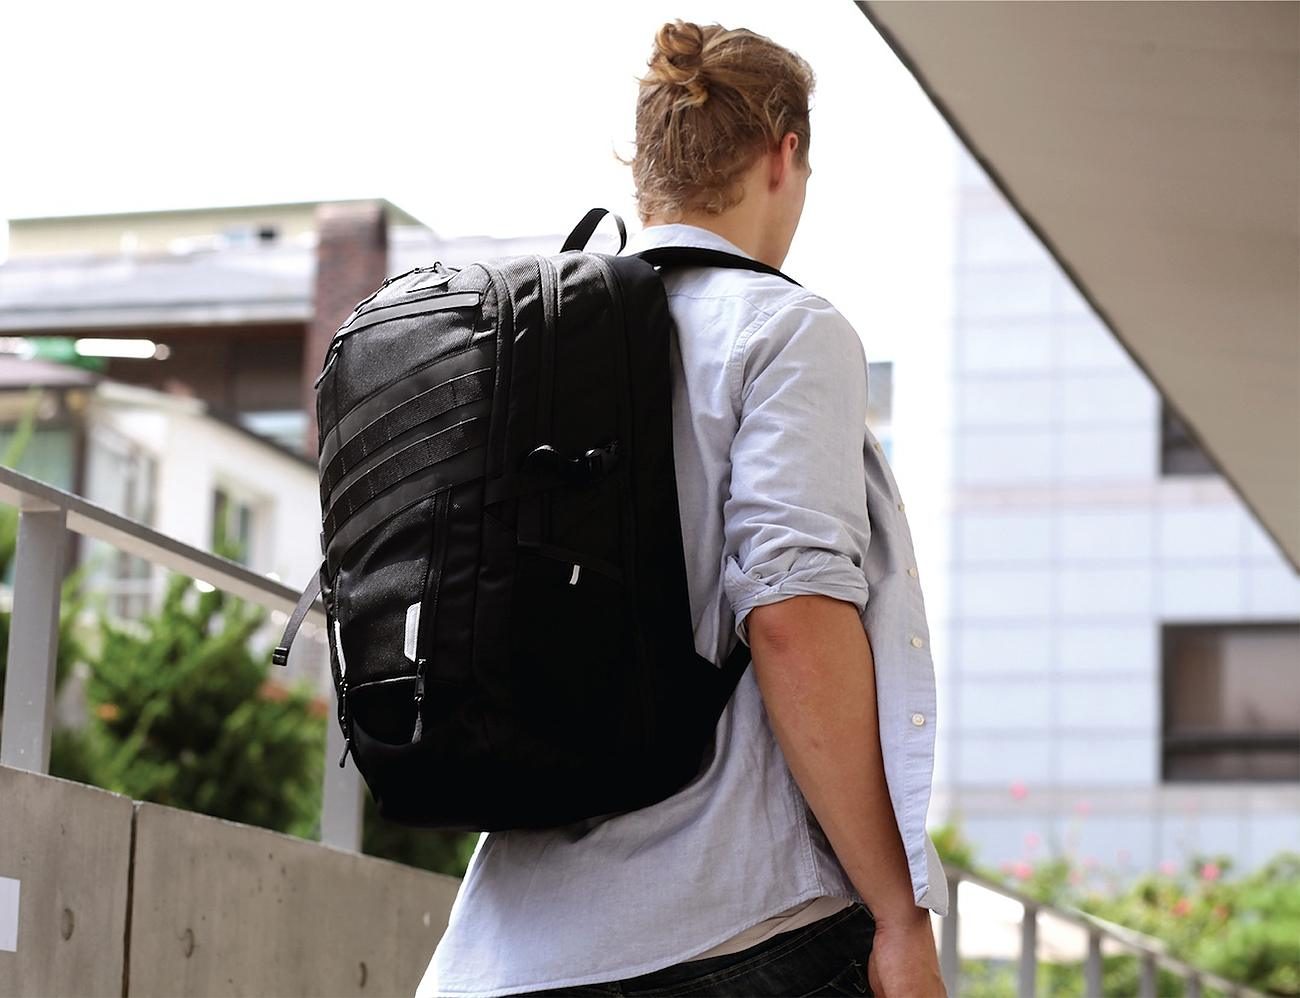 The Most Versatile Backpack With A.B.C. Functions